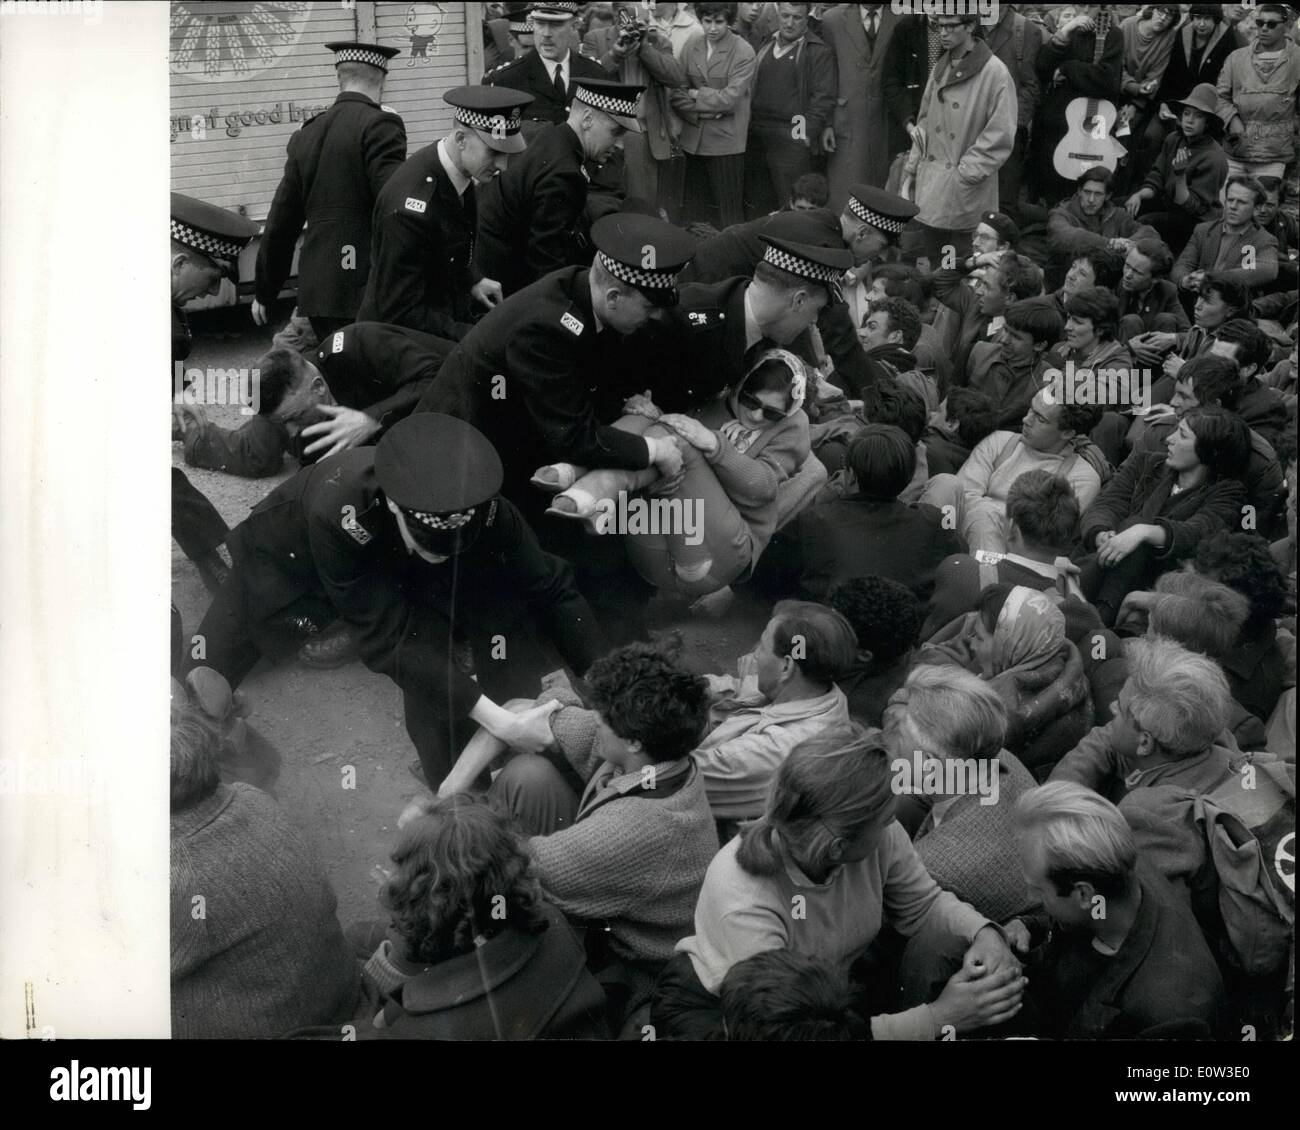 May 05, 1961 - Police Remove Demonstrators From Polaris Base.. Police struggled to remove demonstrators who squatted in the roadway - on the pier etc.. at the Nuclear Weapons - against the American Polaris Submarine now stationed in the Loch.. Keystone Photo Shows:- Police seen as they bodily remove some of the squatters - around the Holy Loch. - Stock Image